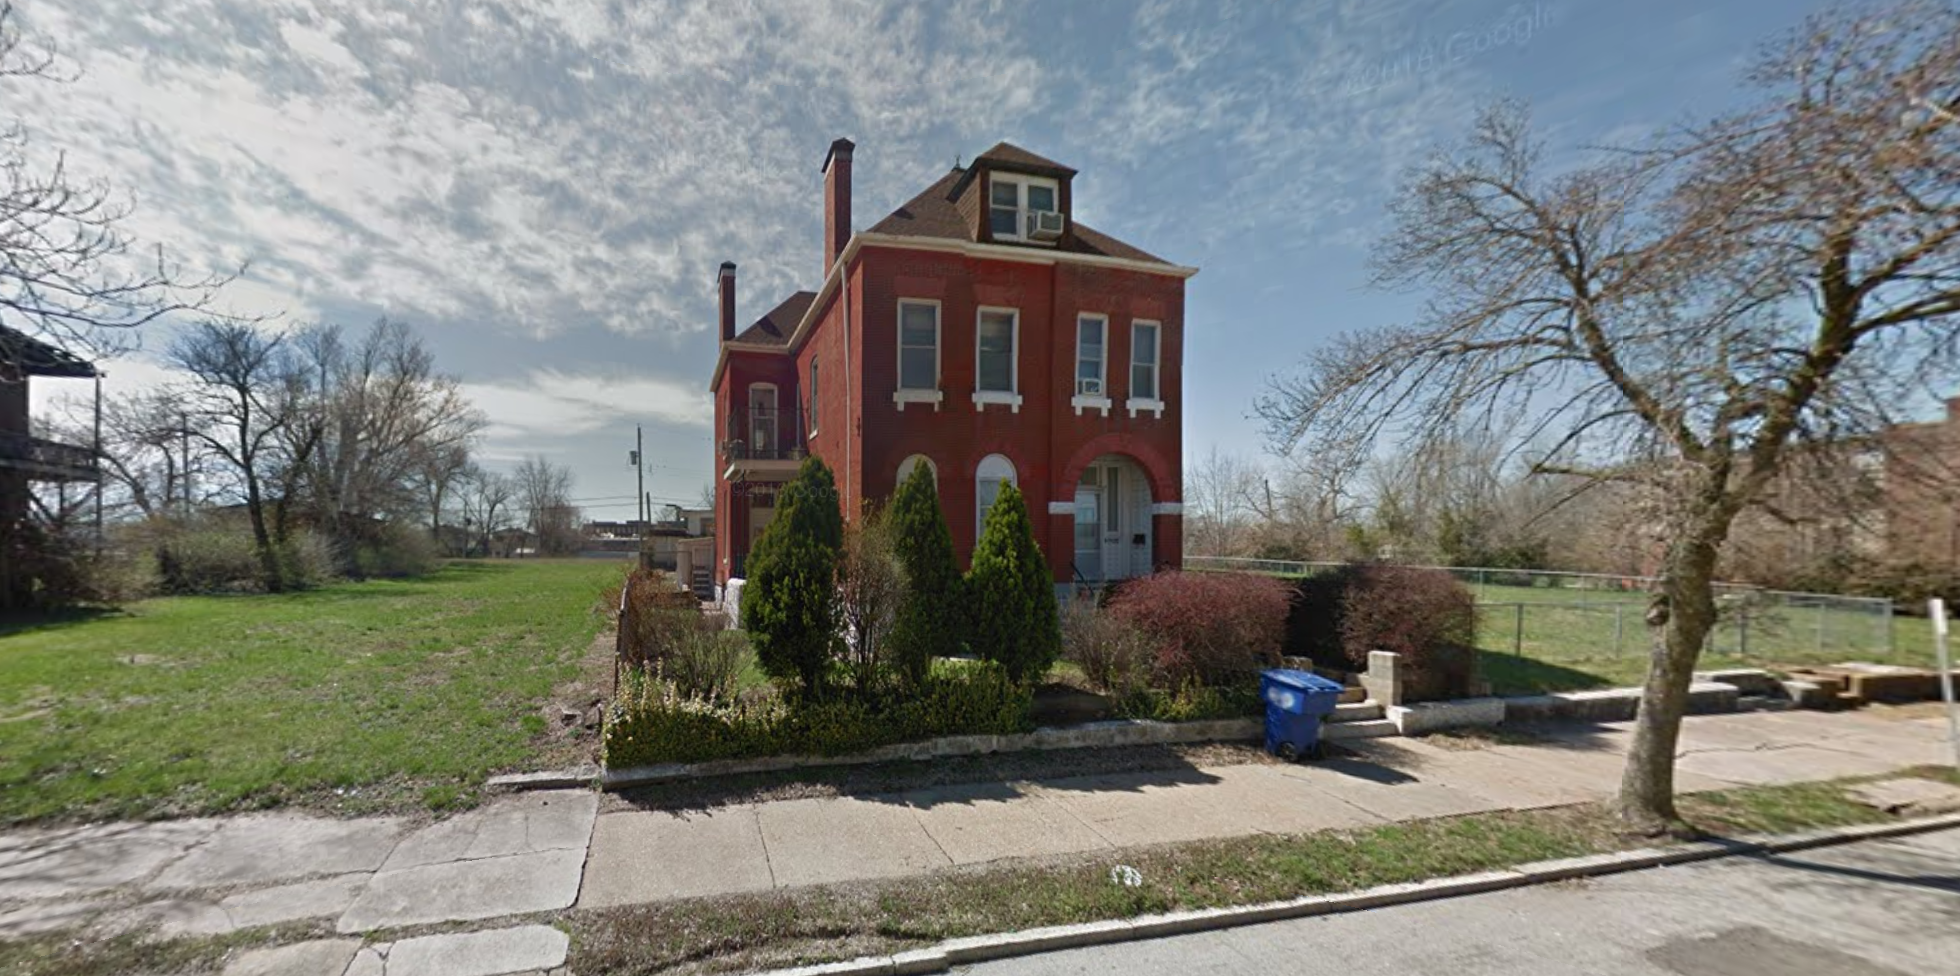 Permit Issued to Relocate Home in NGA Footprint at 2530 N. Market